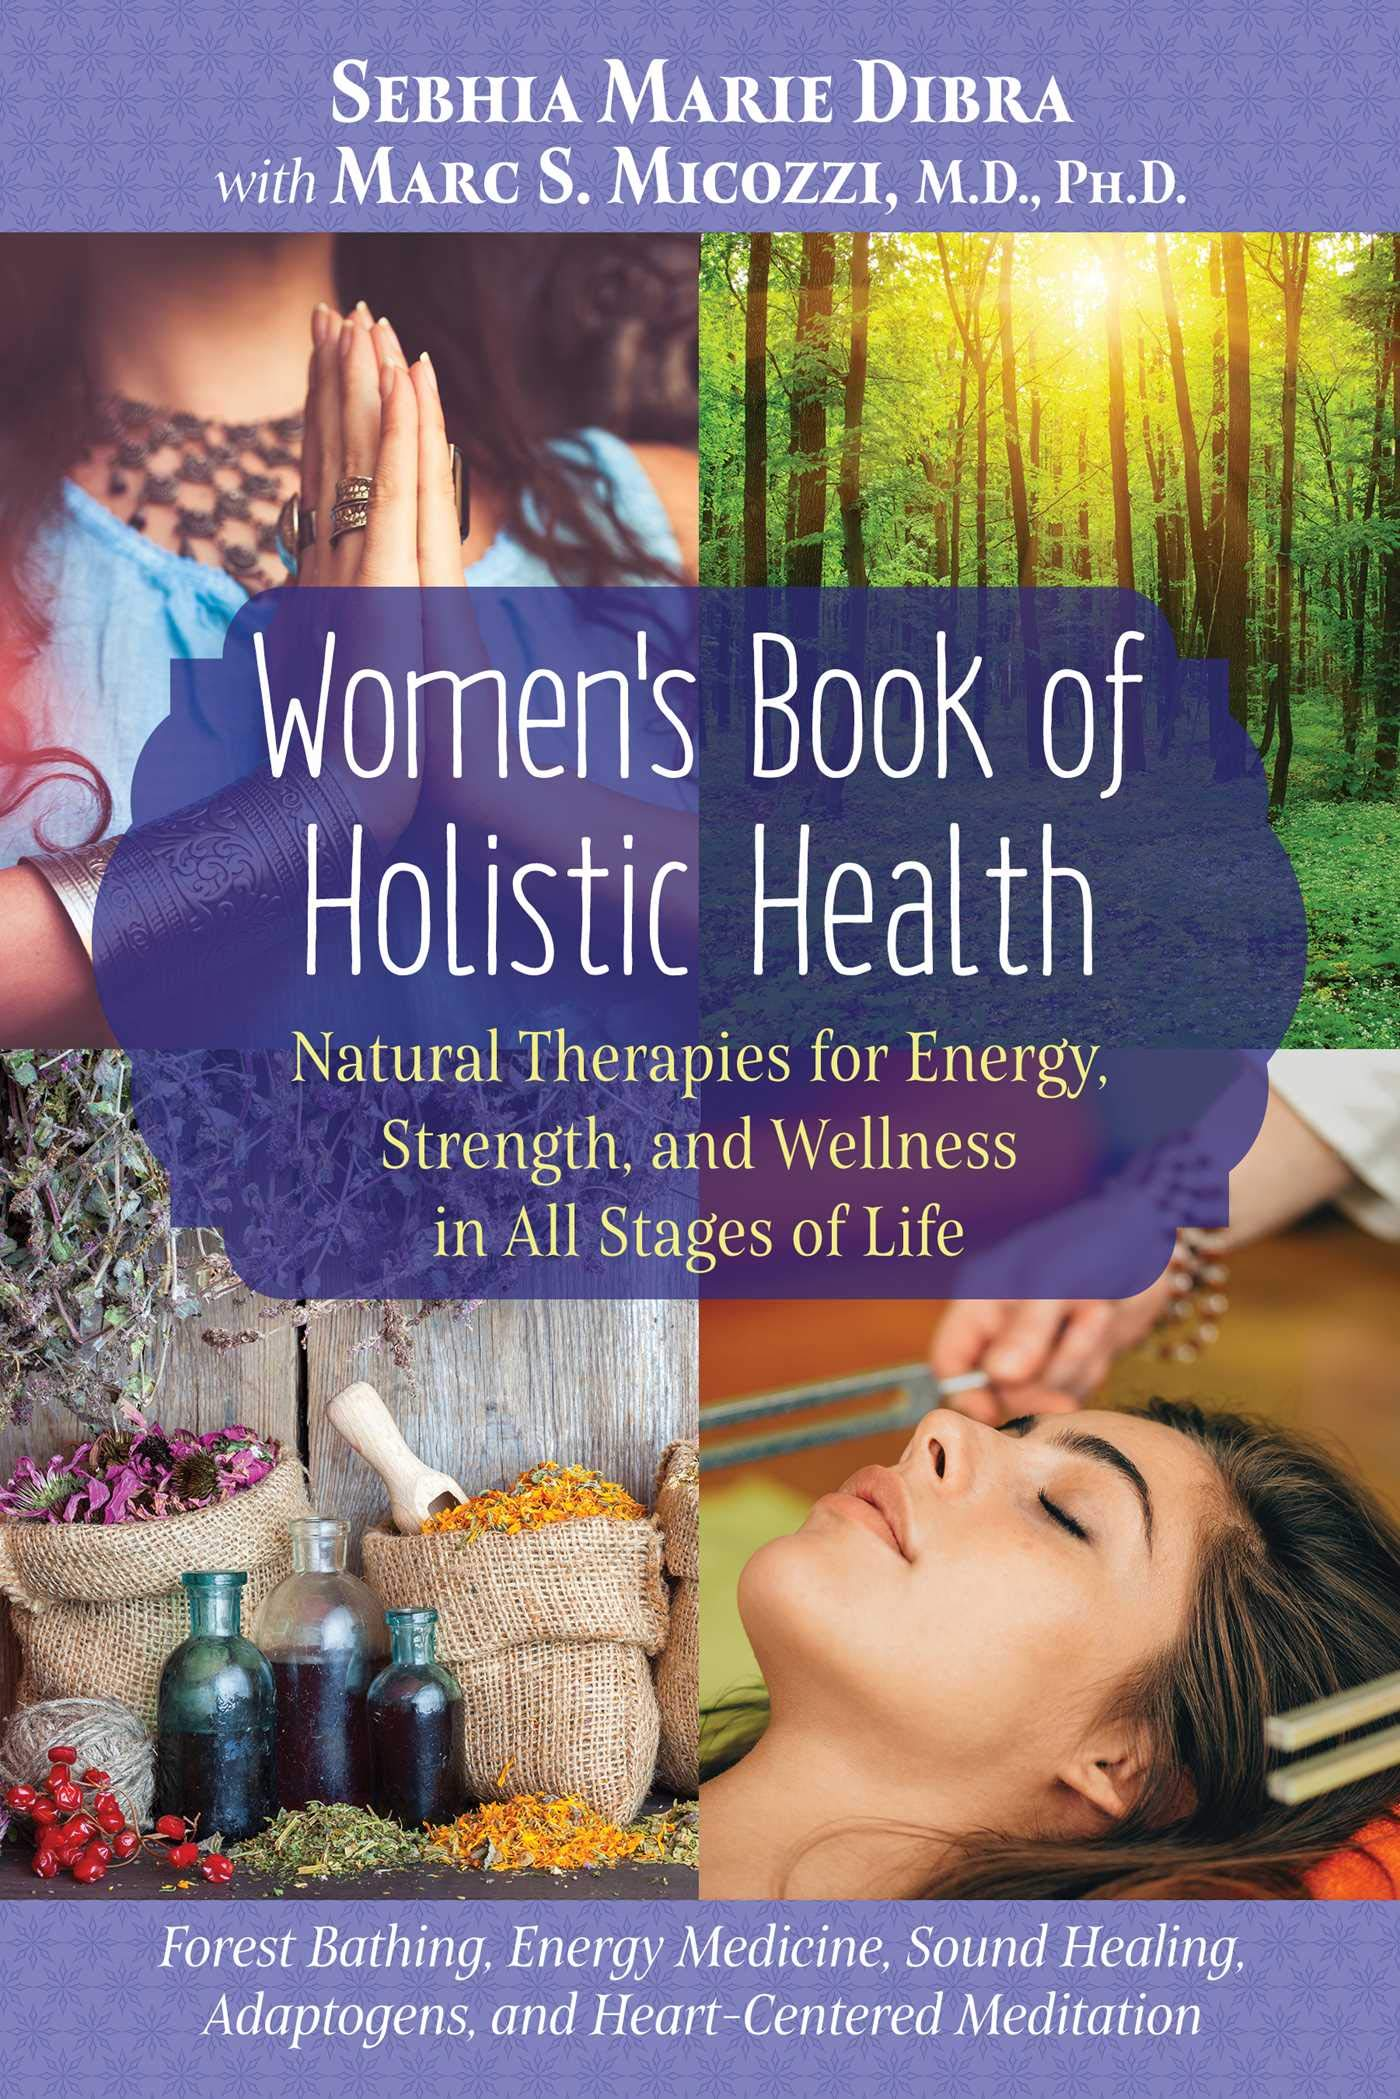 Women's Book of Holistic Health: Natural Therapies for